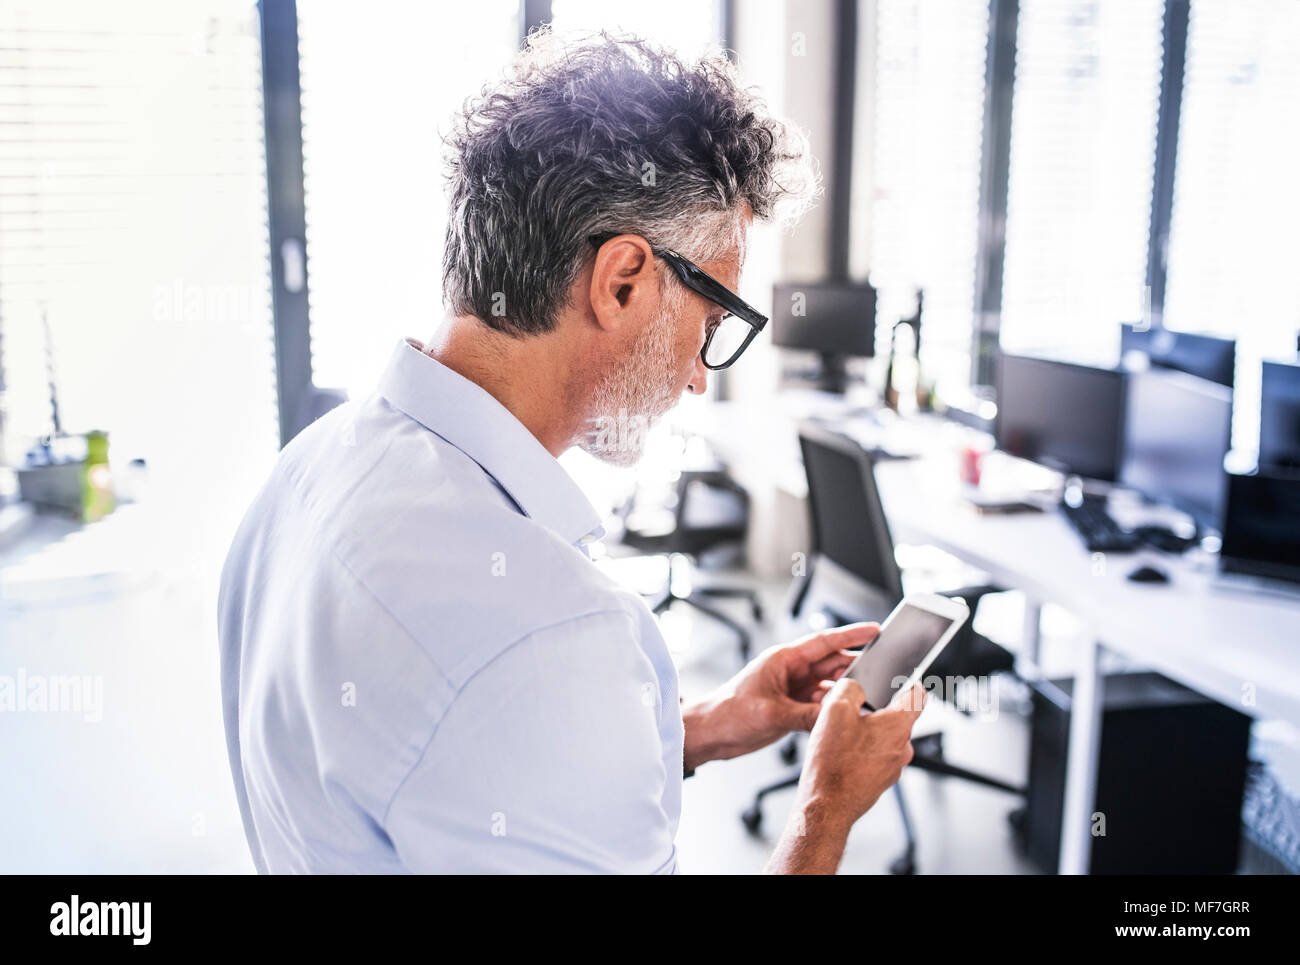 Mature businessman in office using smartphone - Stock Image